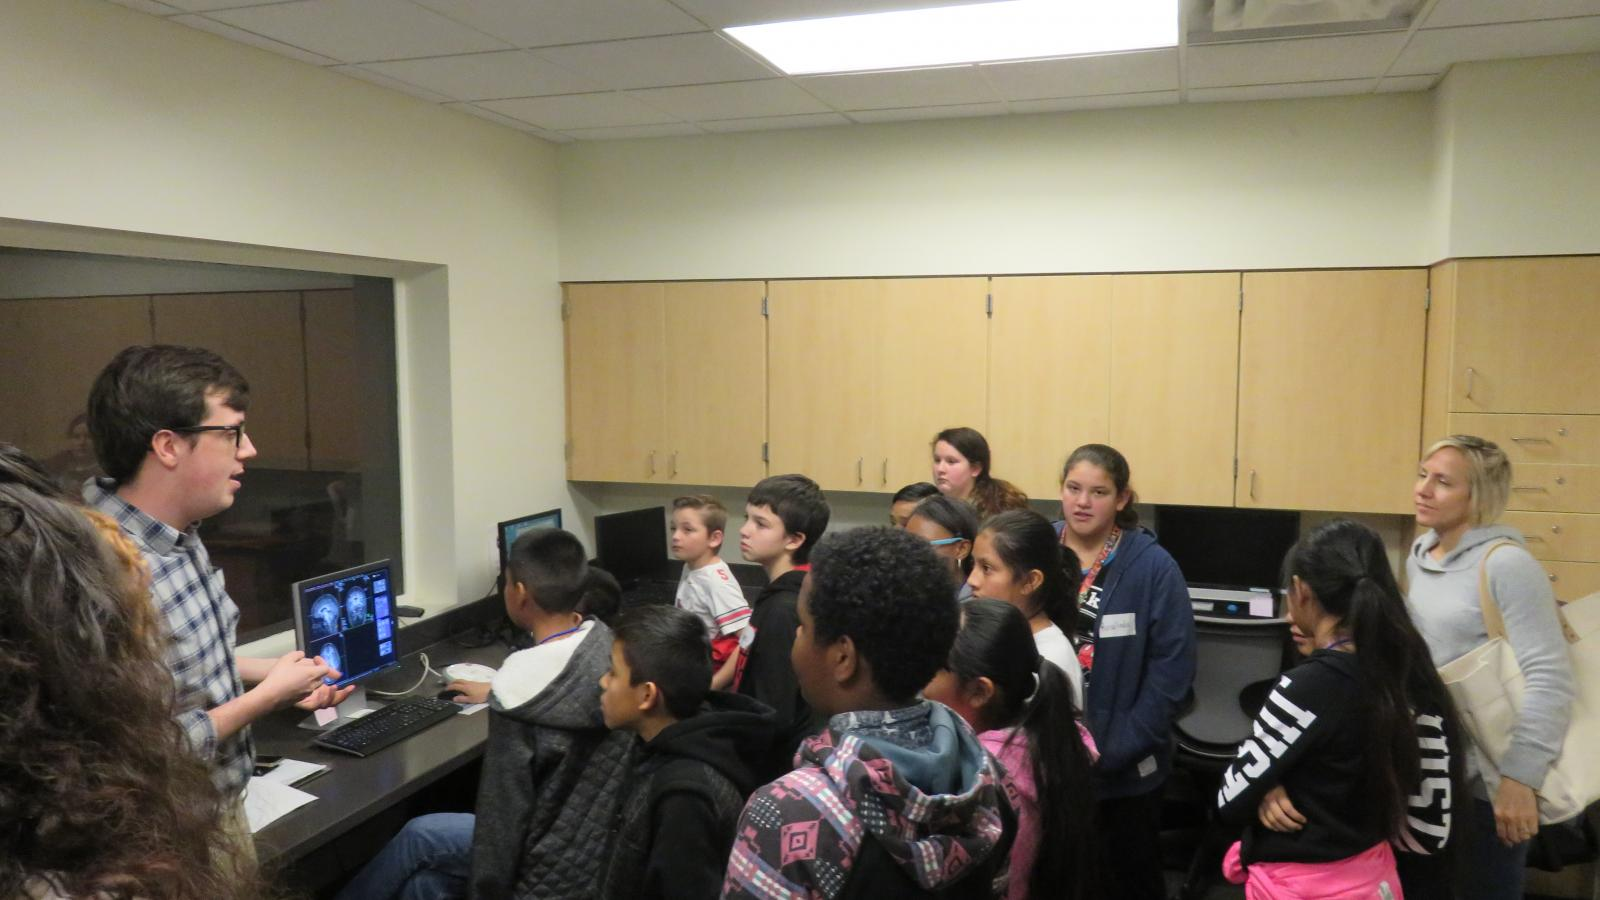 Members of the CCBBI Student Group lead Hilltonia 6th graders on a tour of the fMRI suite.